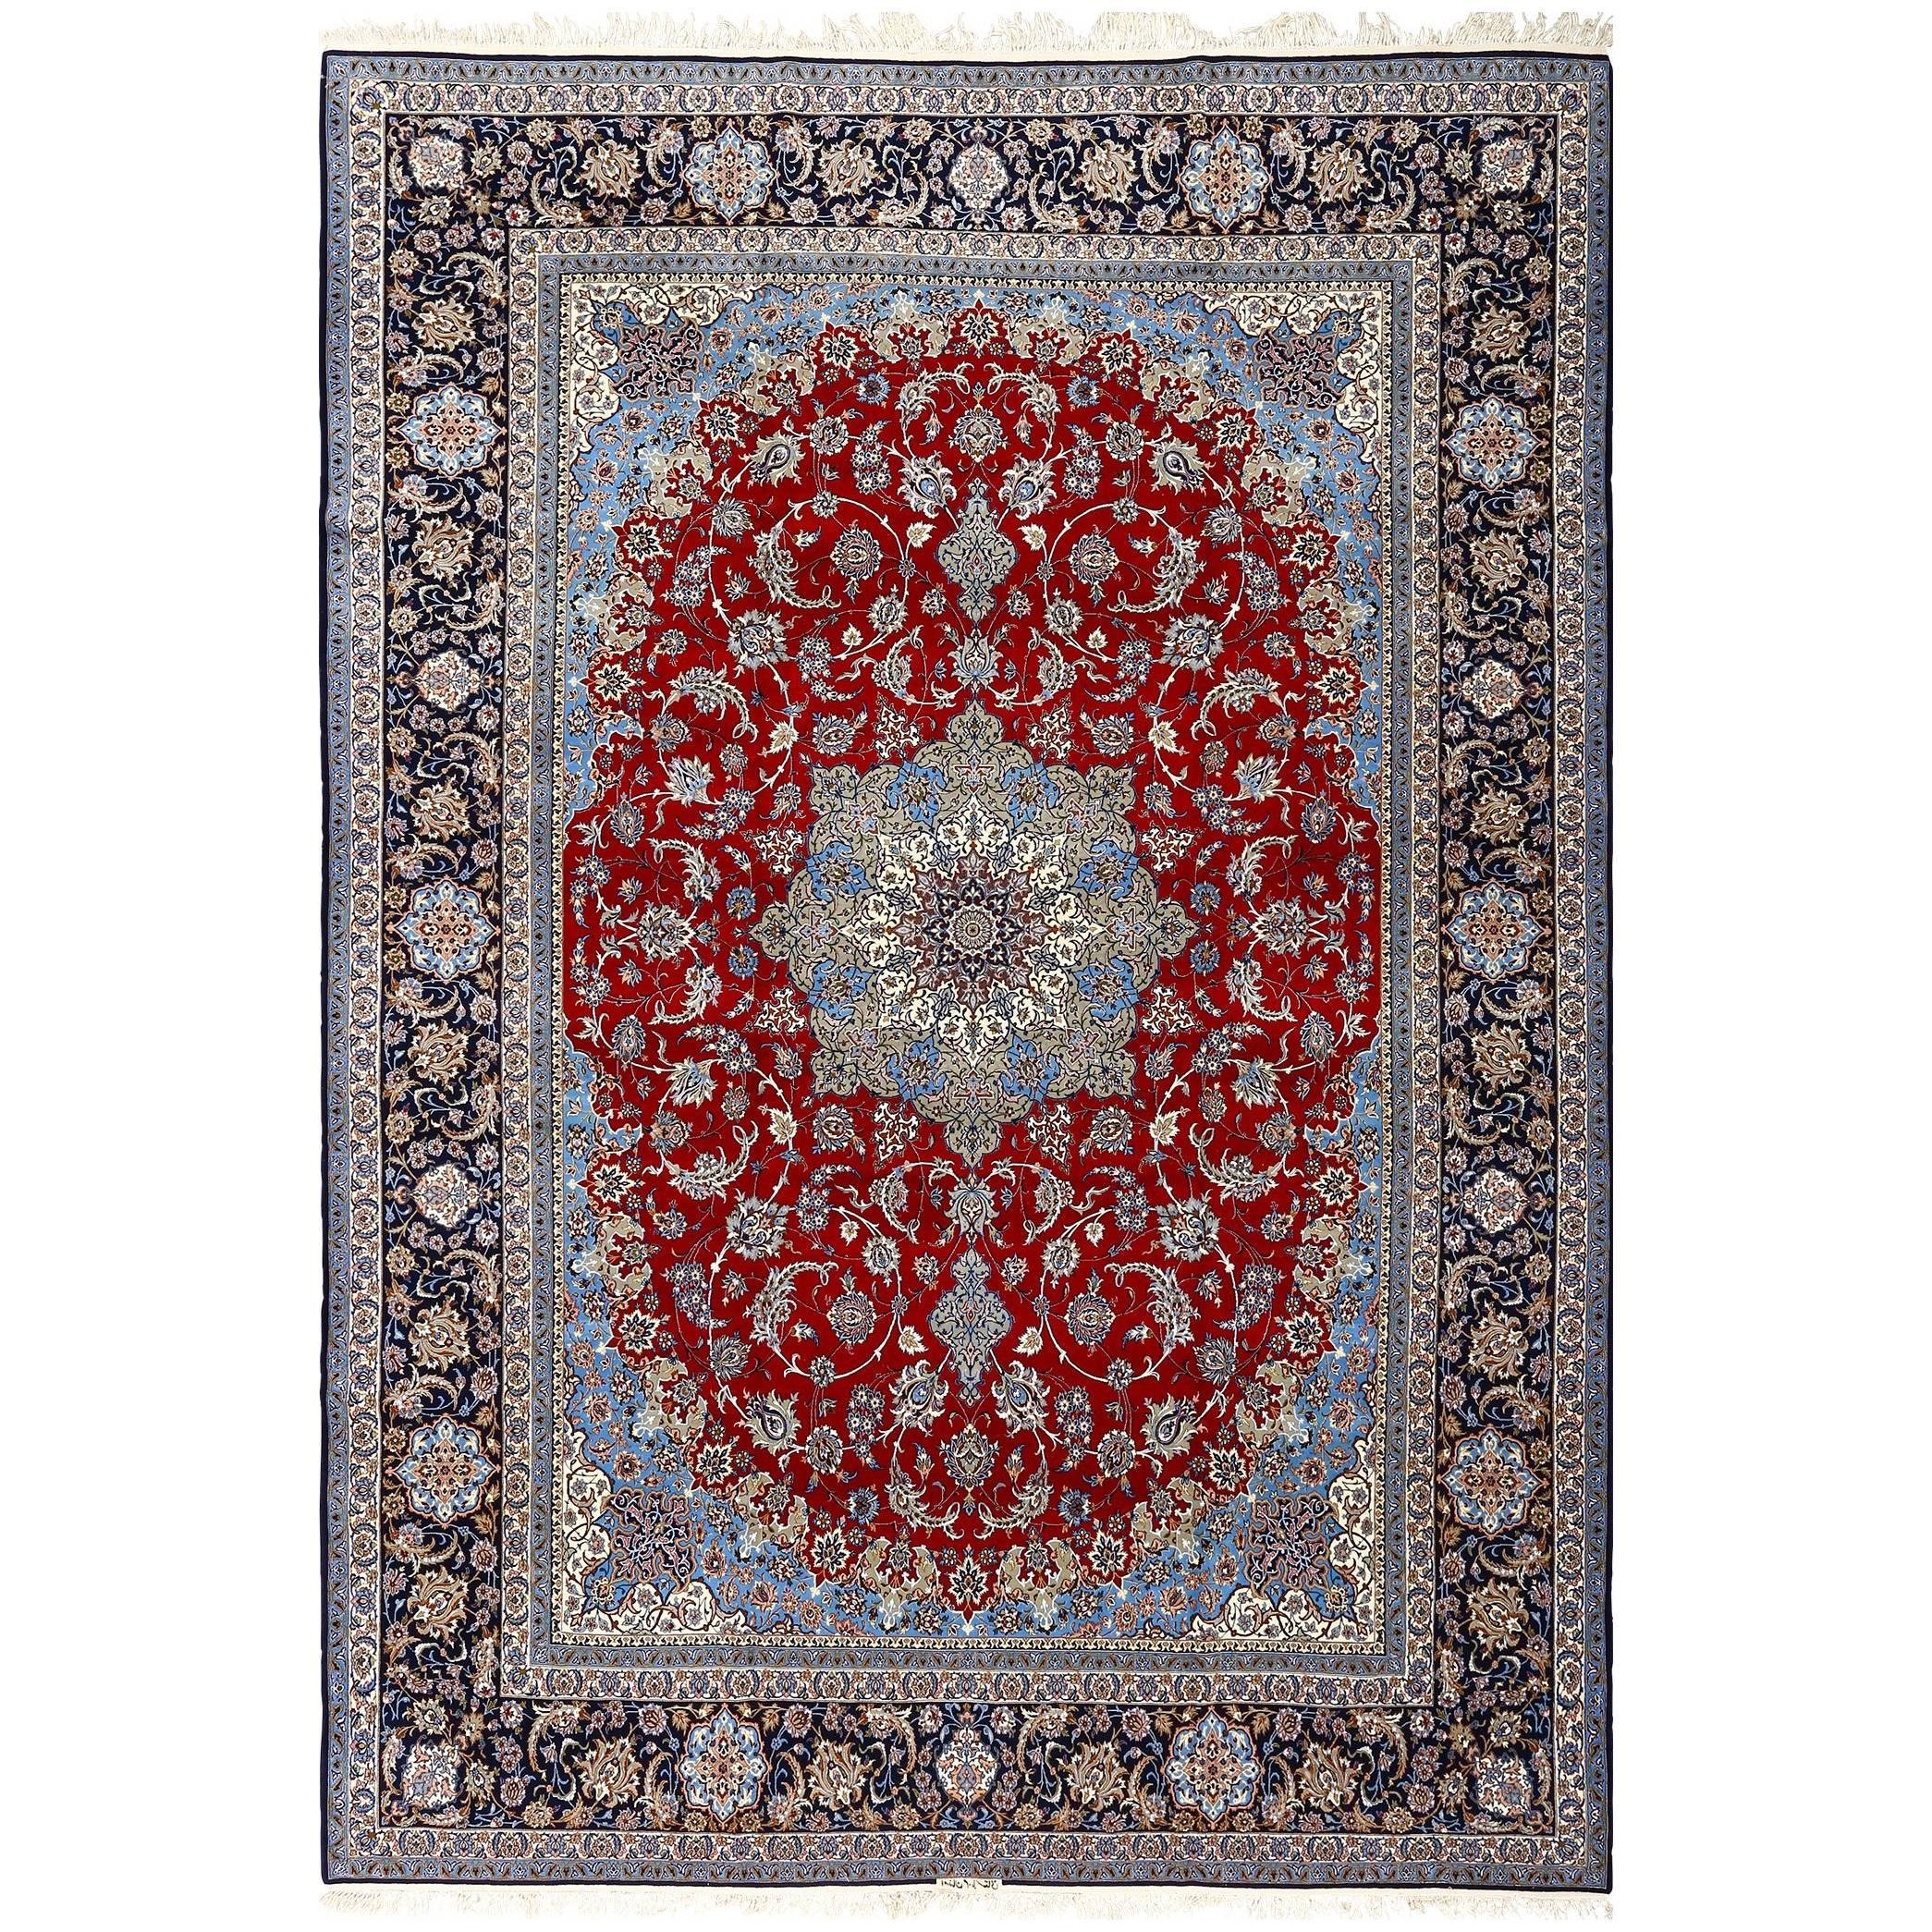 Vintage Persian Rugs Red Rug Carpet From Iran At 1stdibs